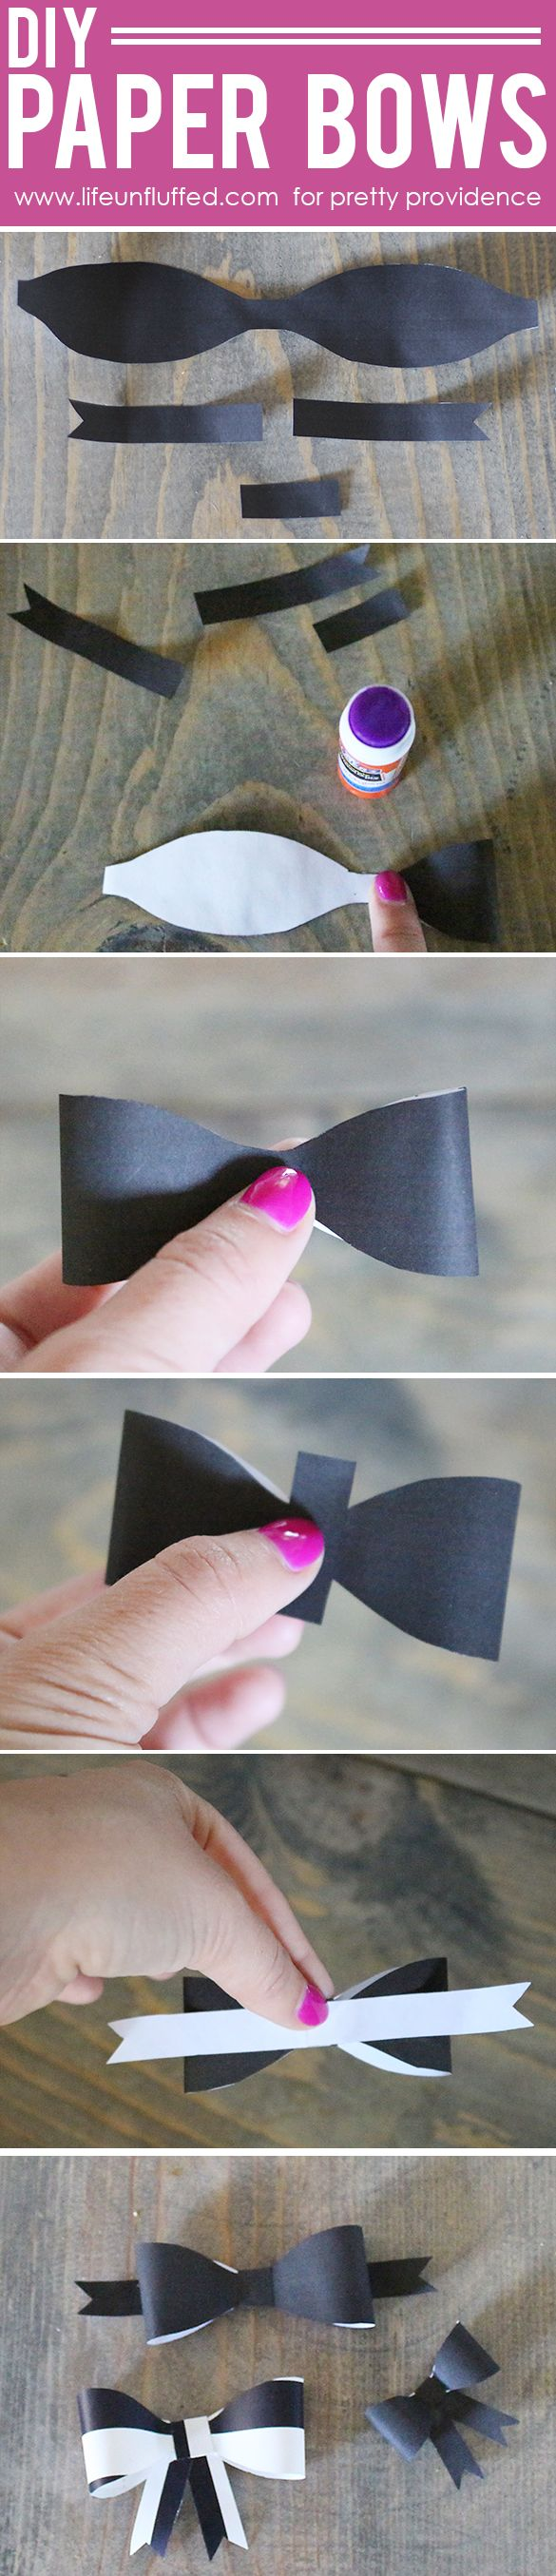 Free printable paper bow template!! Never have a bow-less gift again! Love this so much!